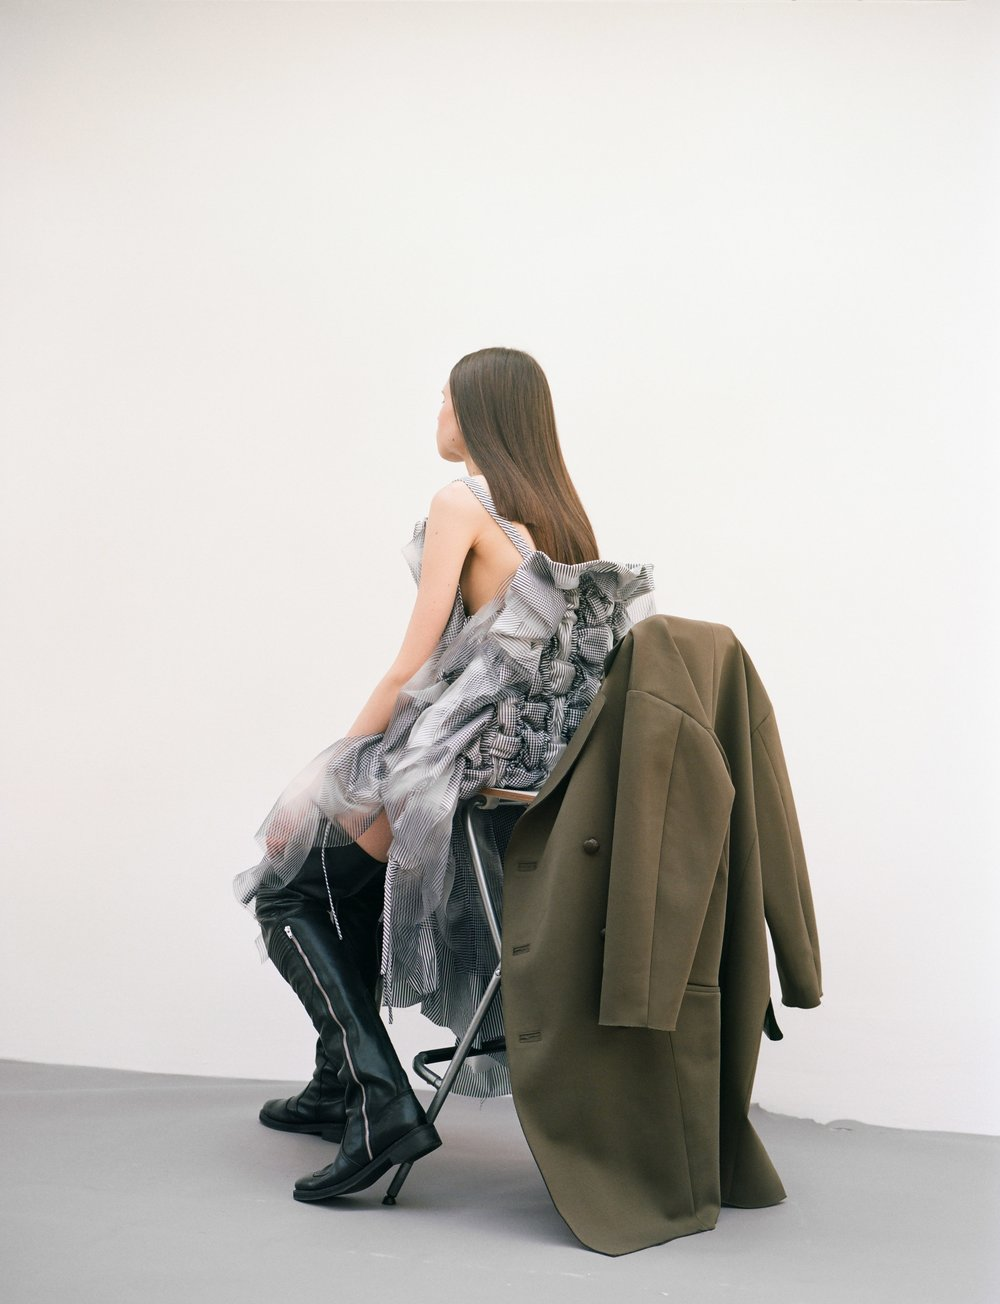 Dress  Roberts|Wood    Boots  TOGA Archives    Jacket  TOGA Pulla